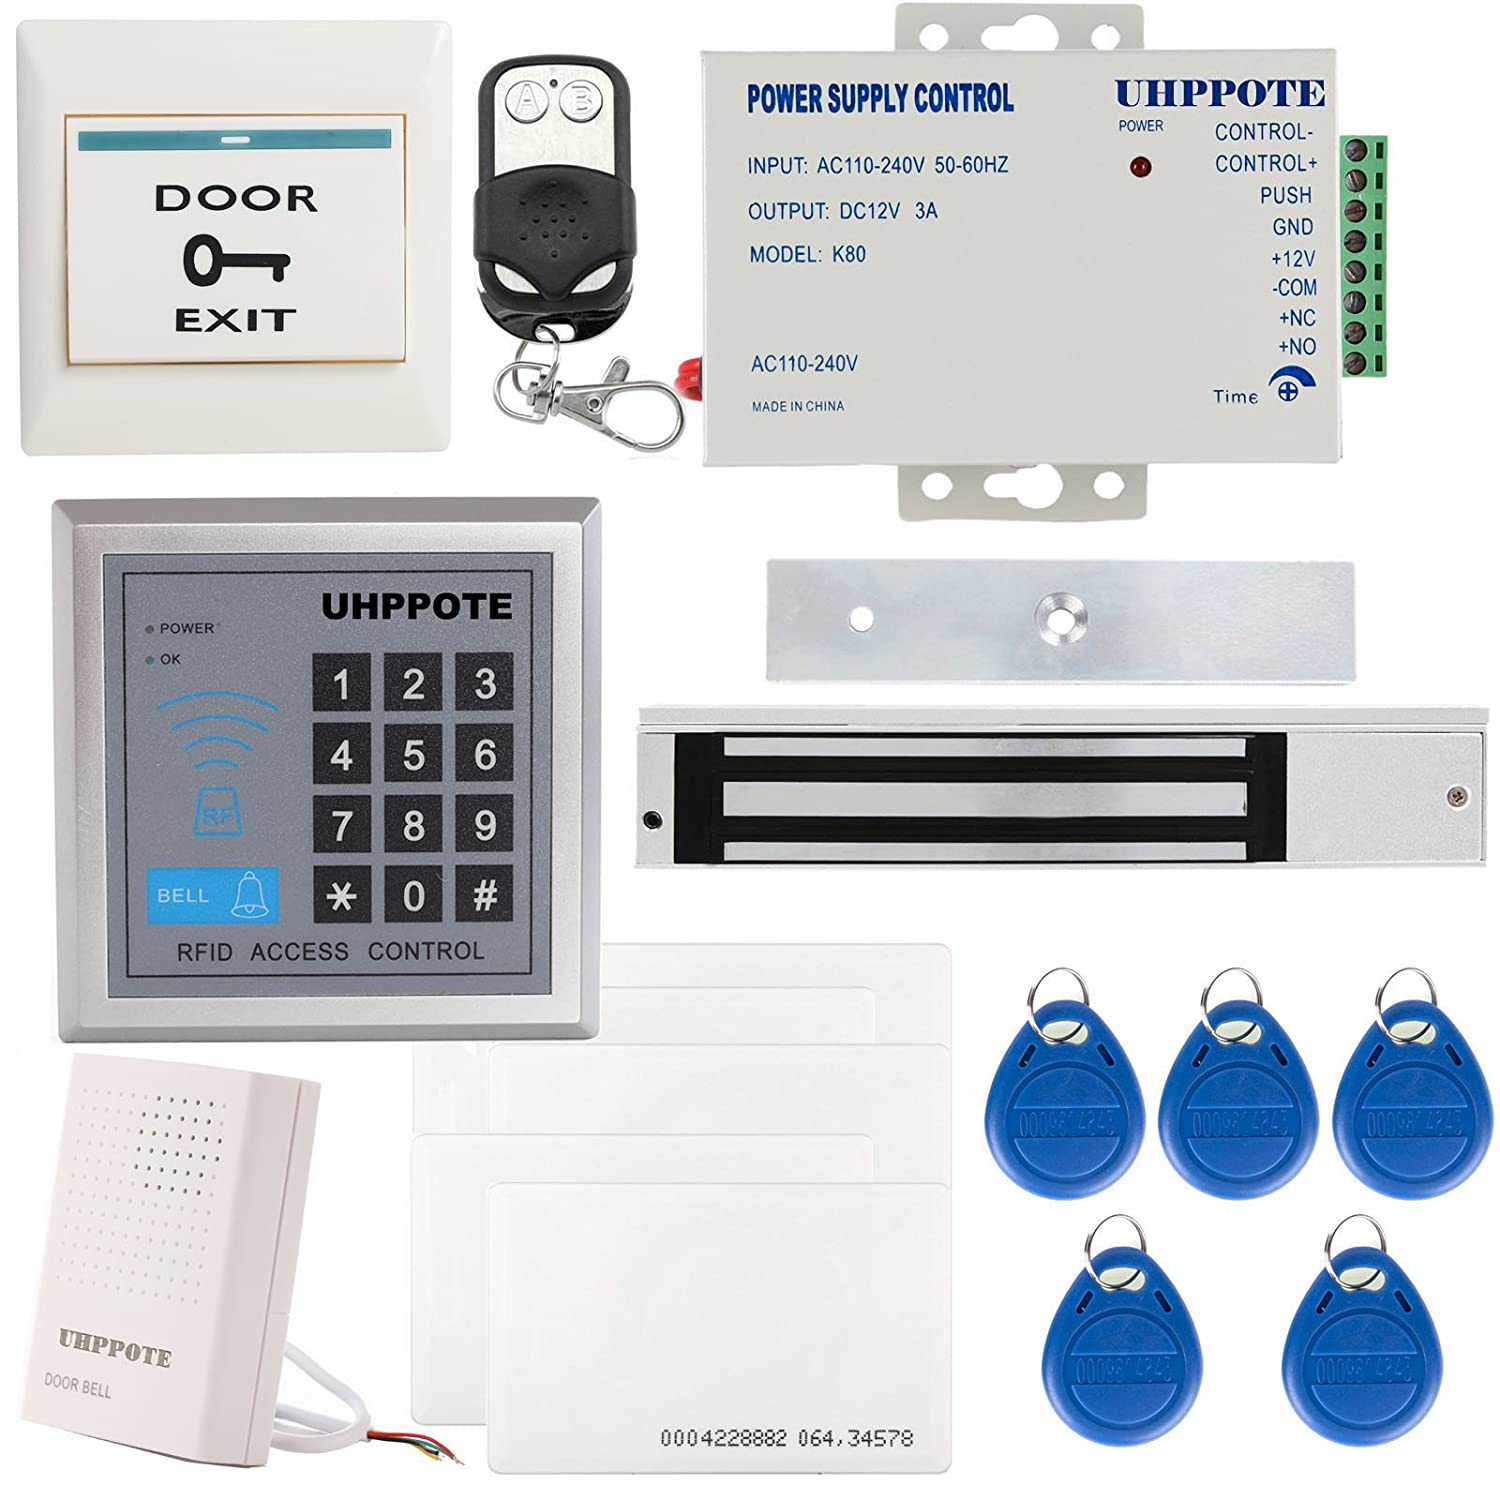 Amazon.com: UHPPOTE Full Complete 125KHz EM-ID Card 1 Door Security ...